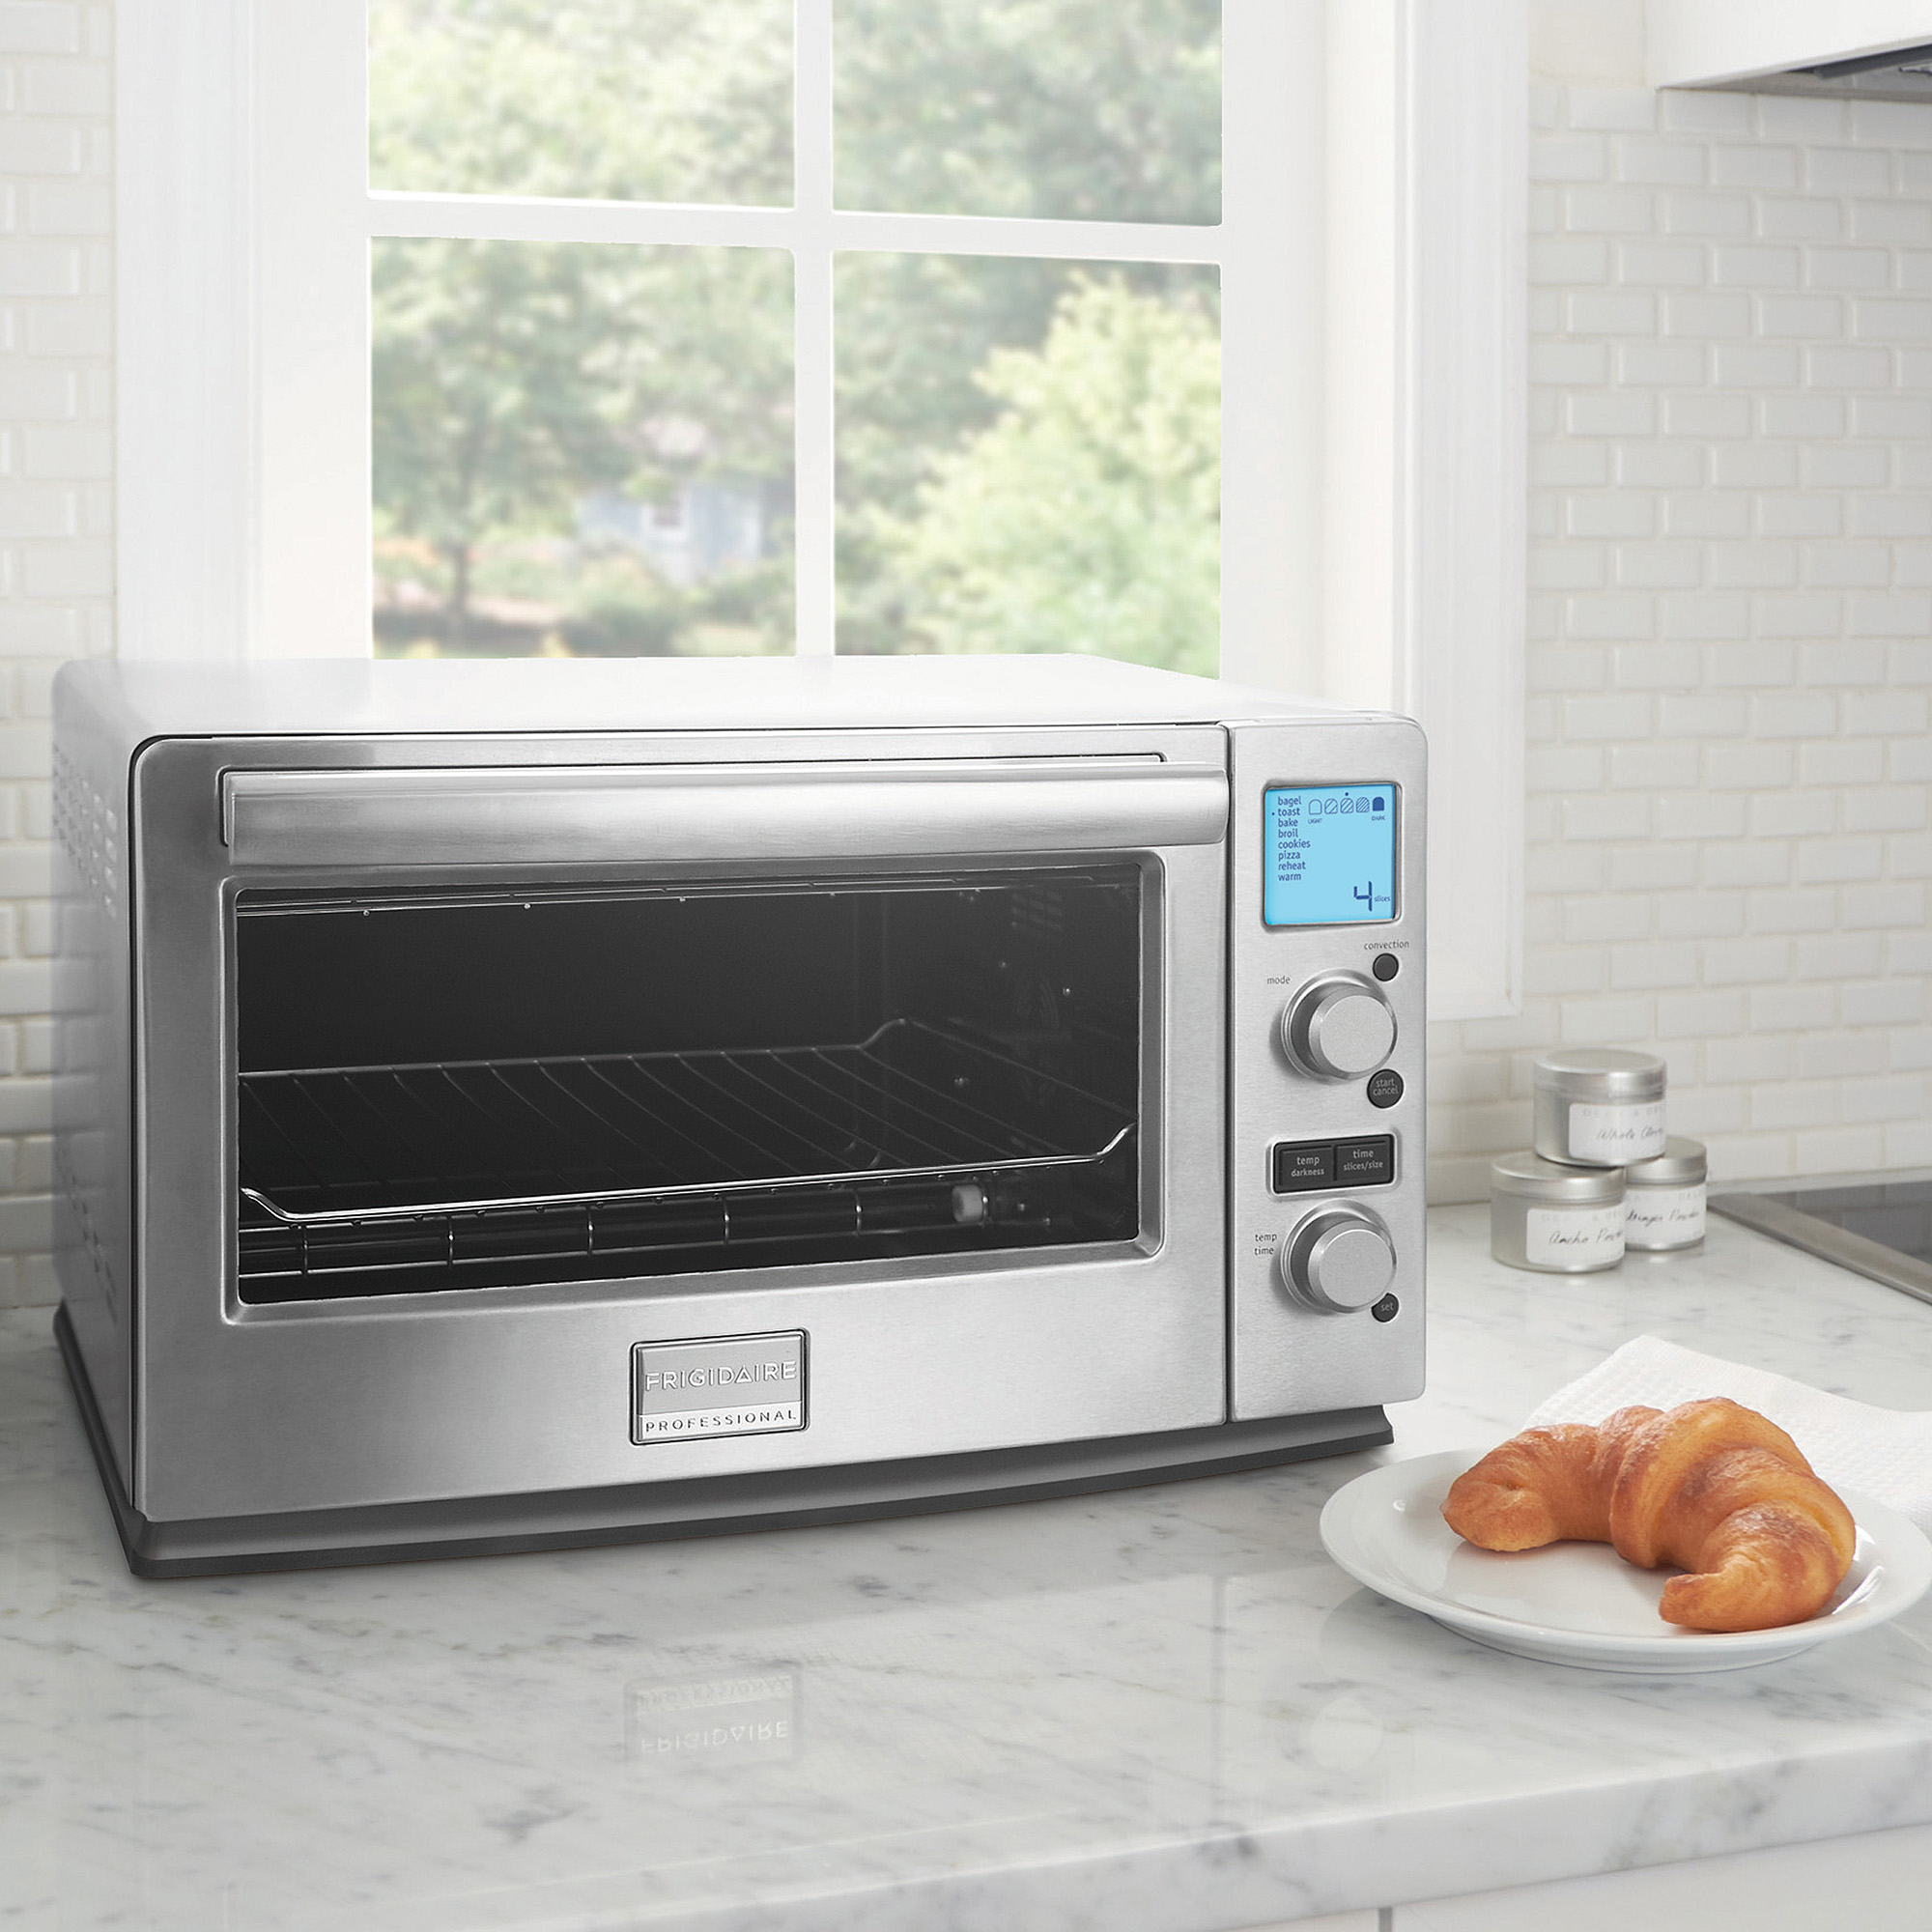 spacemaker toaster black lovely amp and of decker digital oven